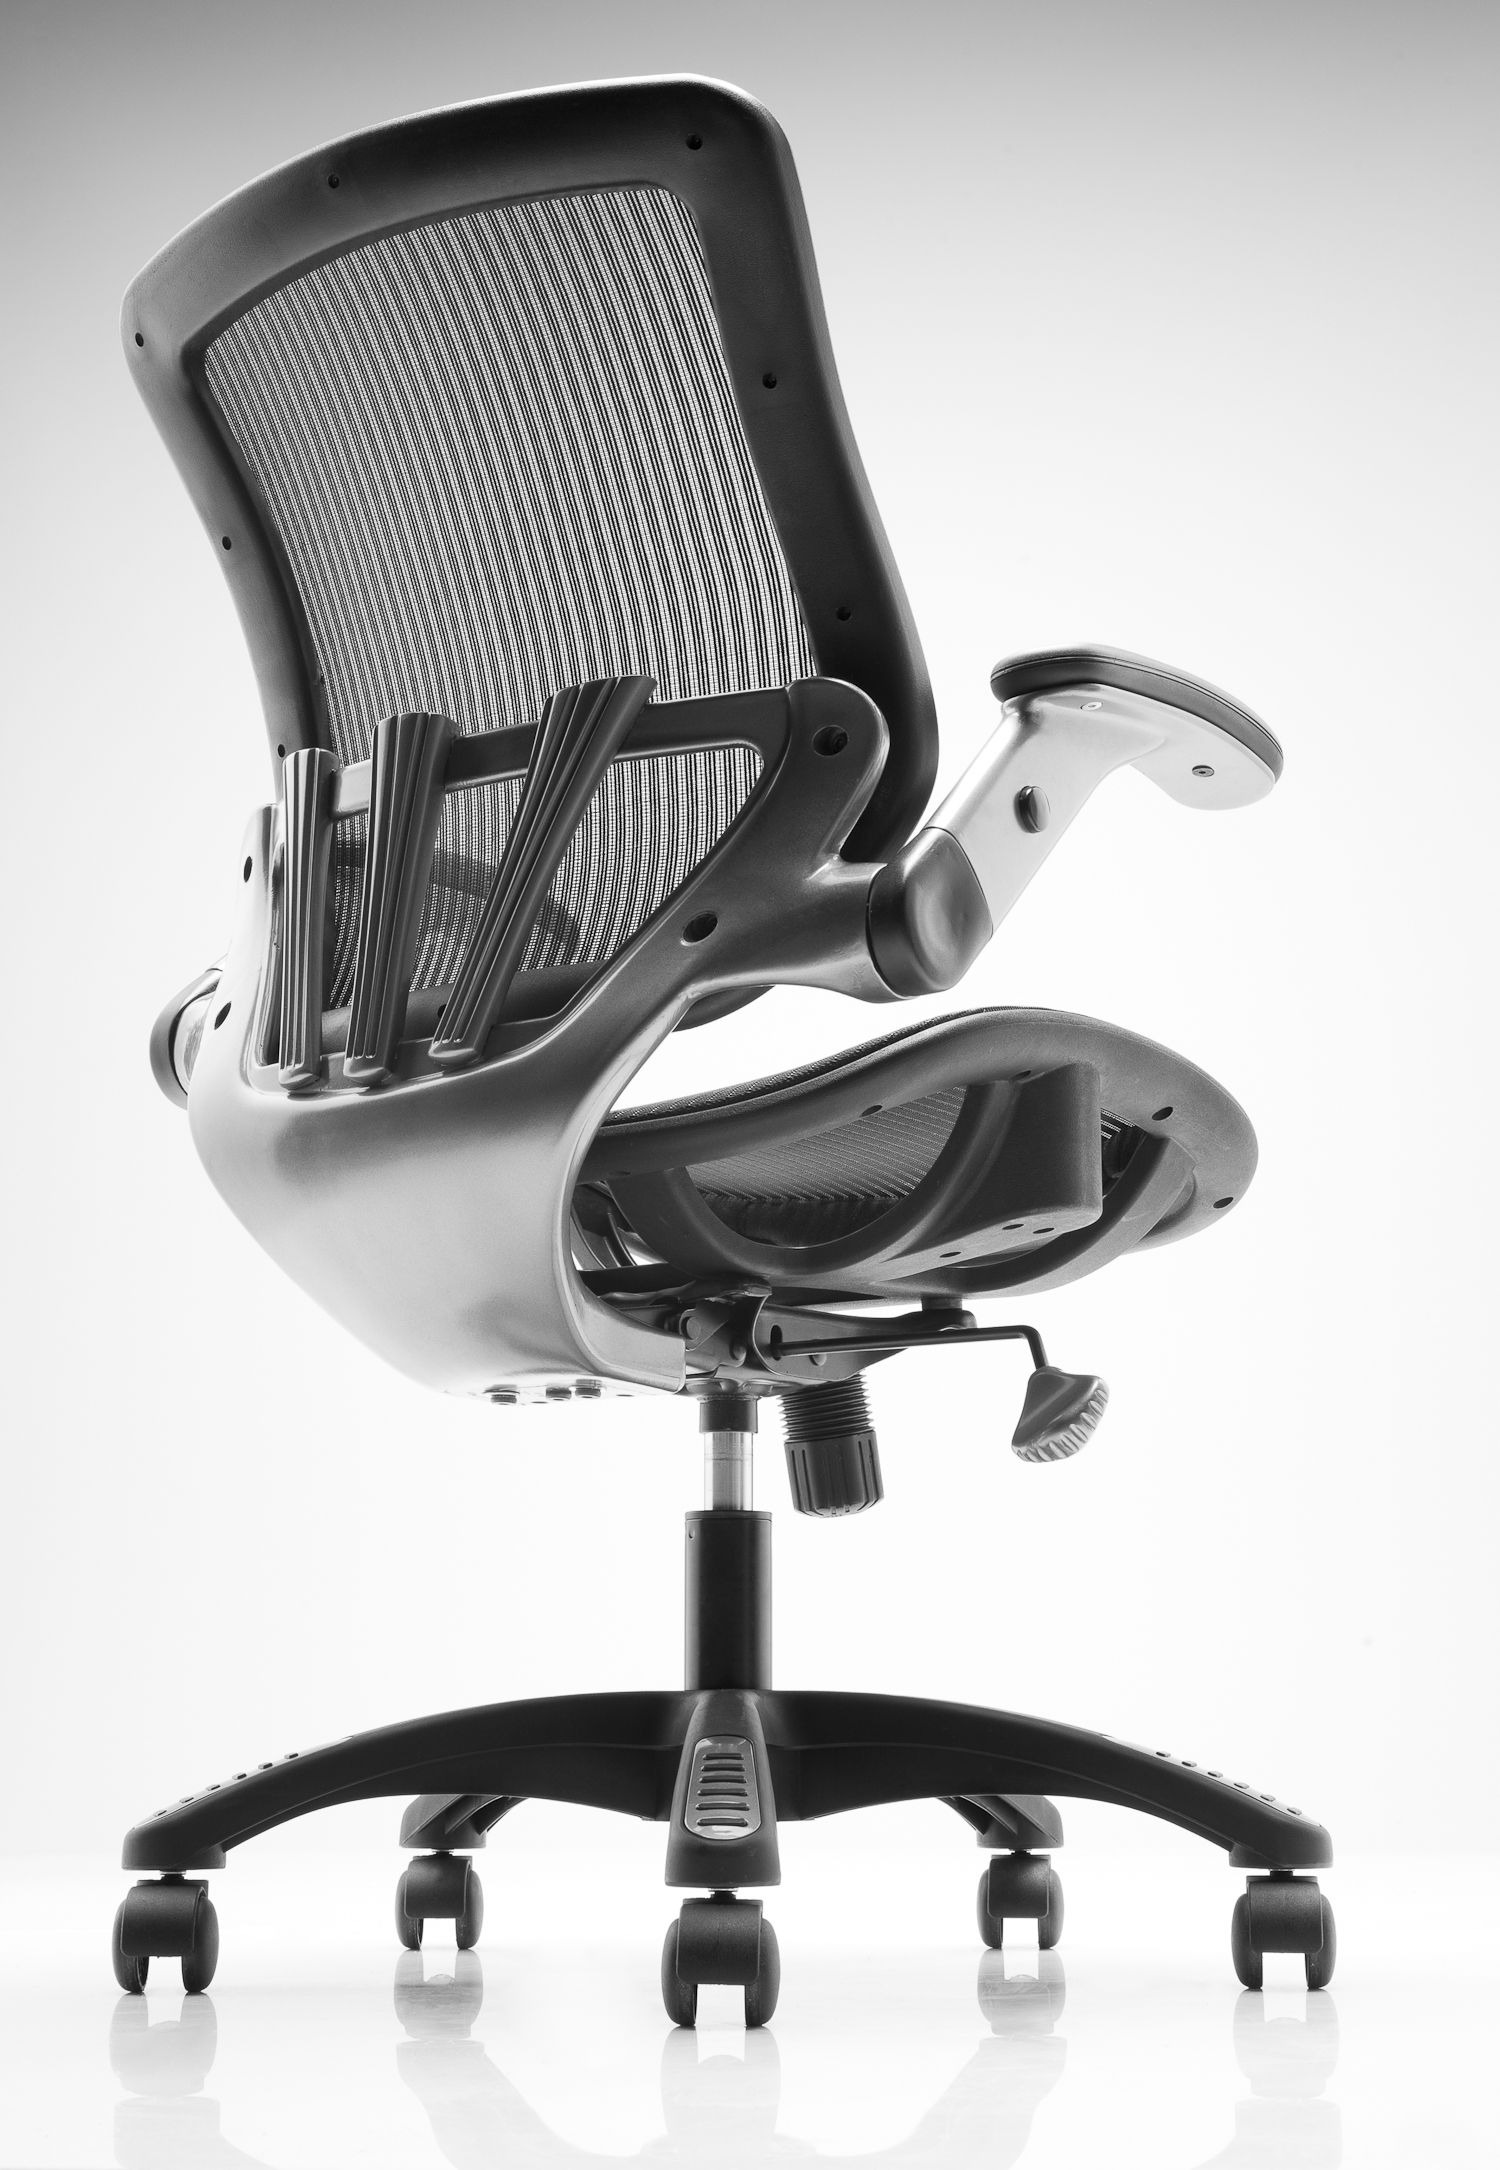 Bayside Office Chair Hazz Design Costco Mesh Task Office Chair Only 99 At